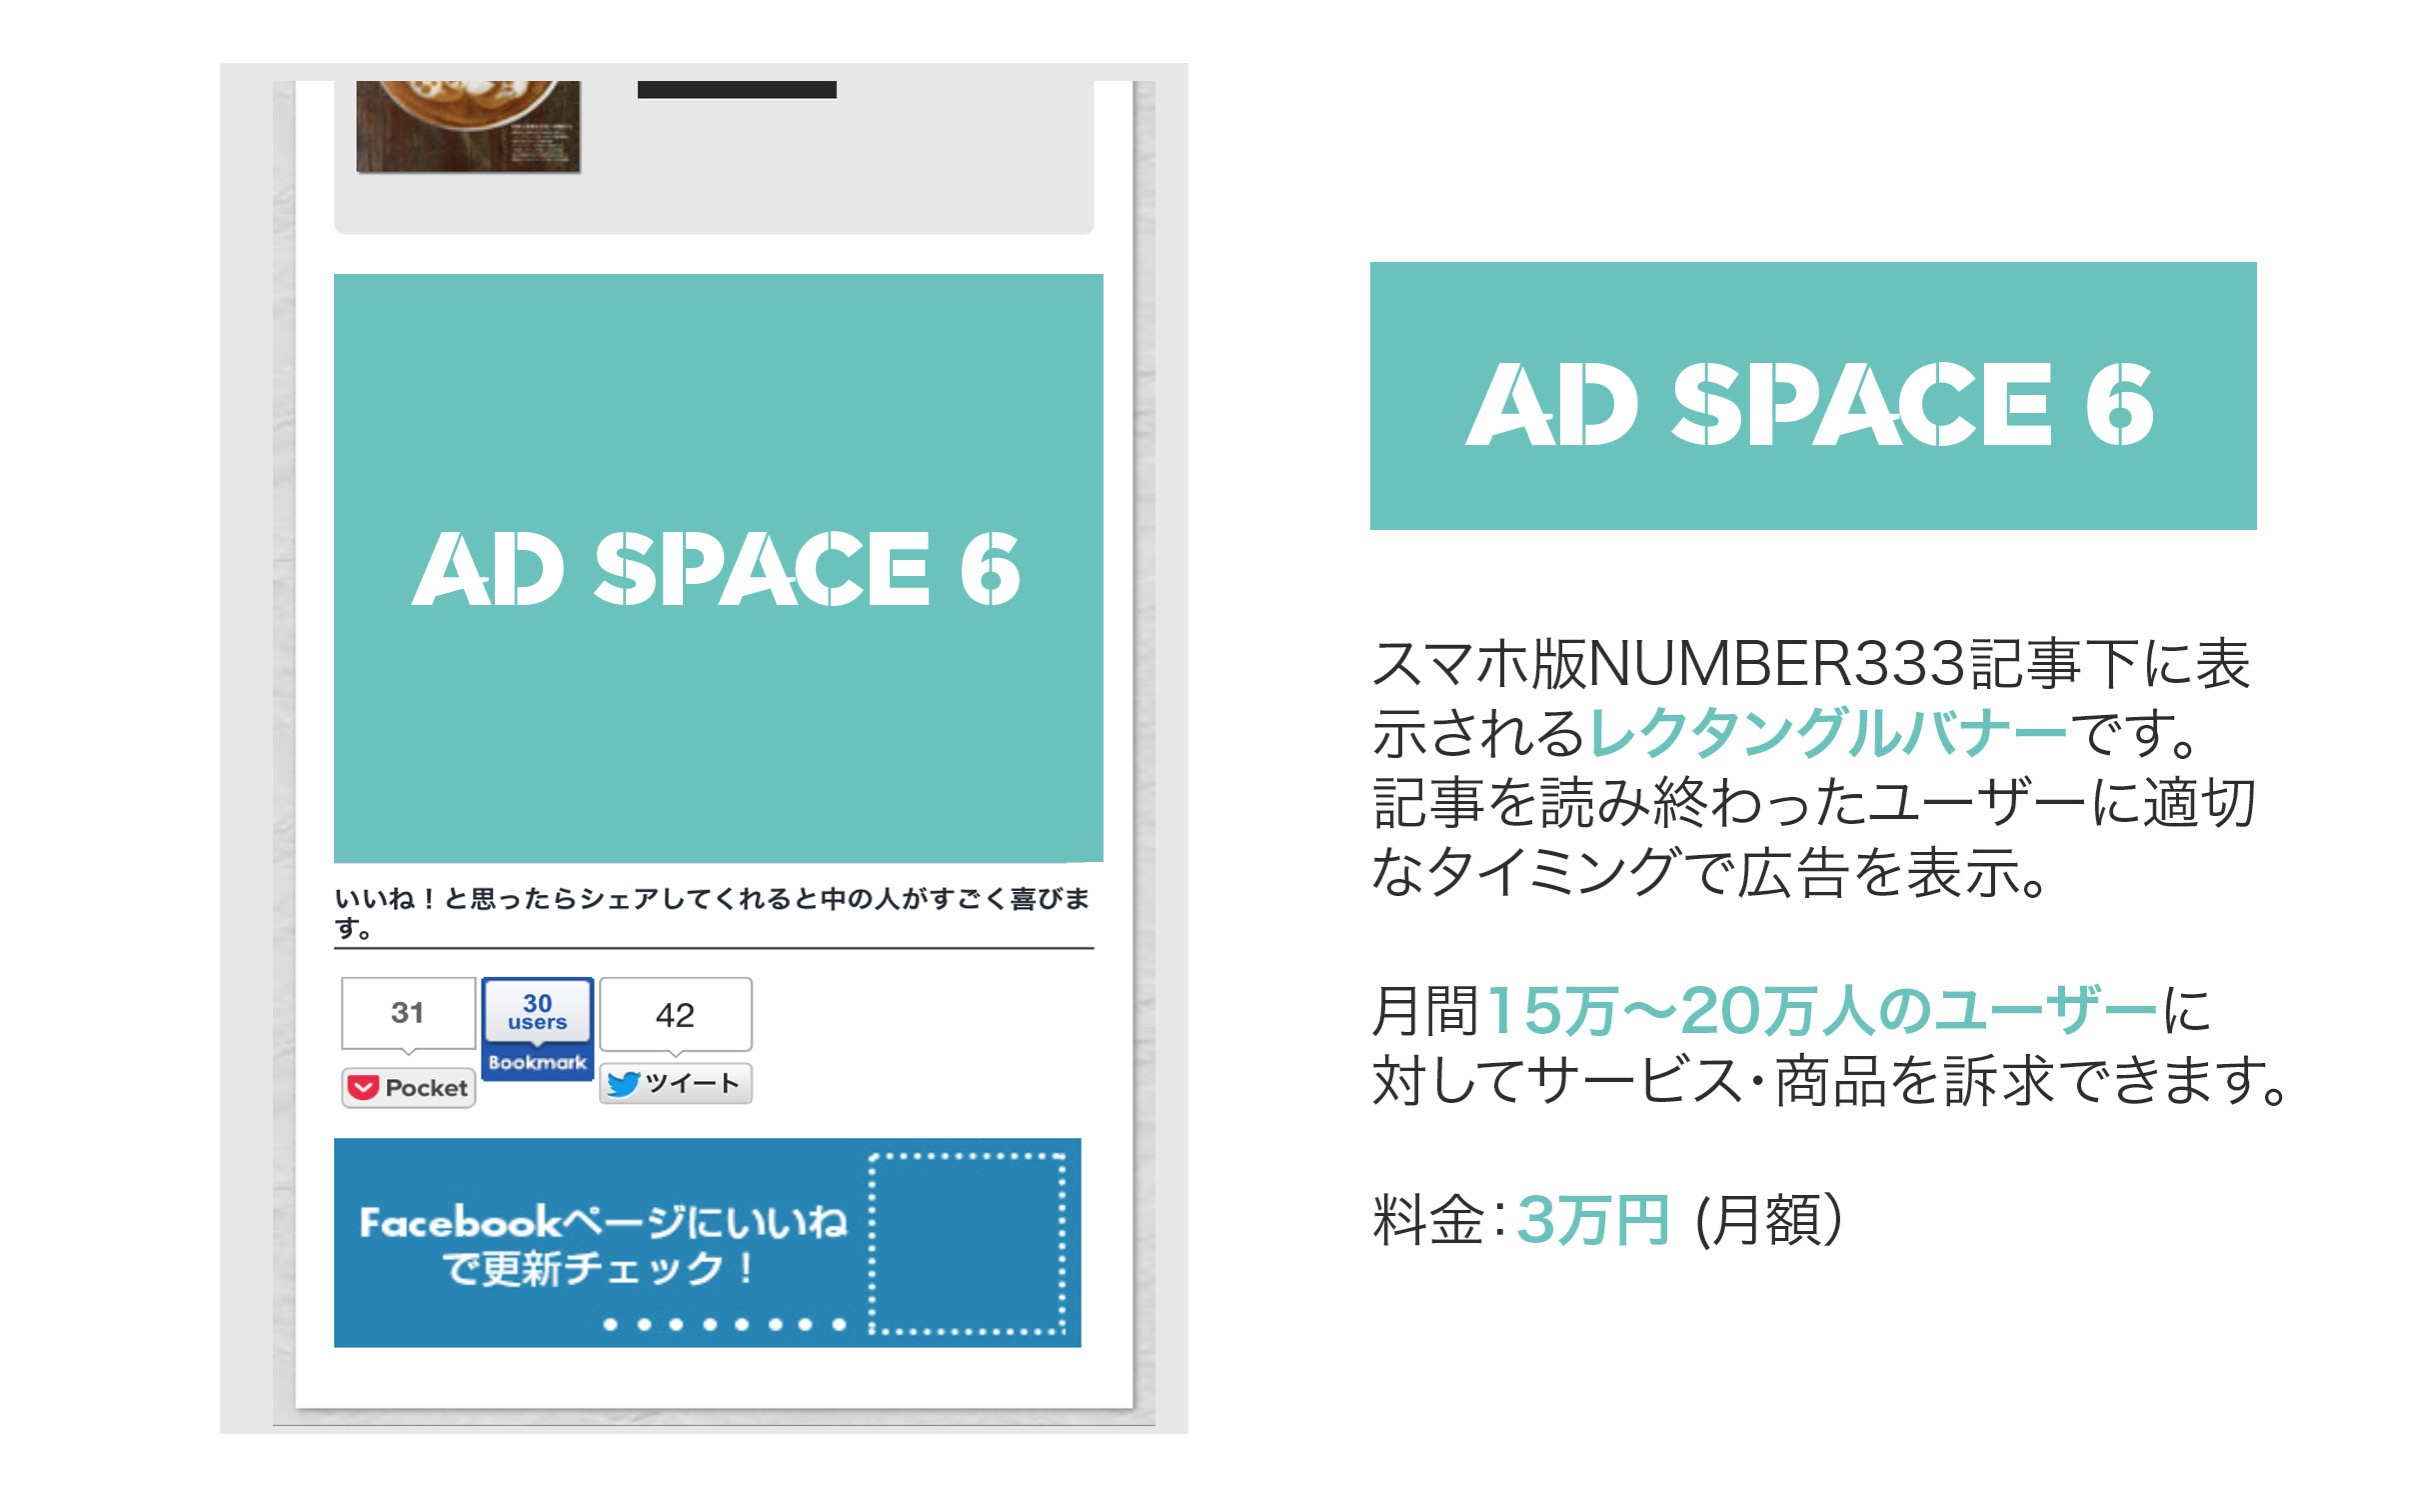 Adspace6